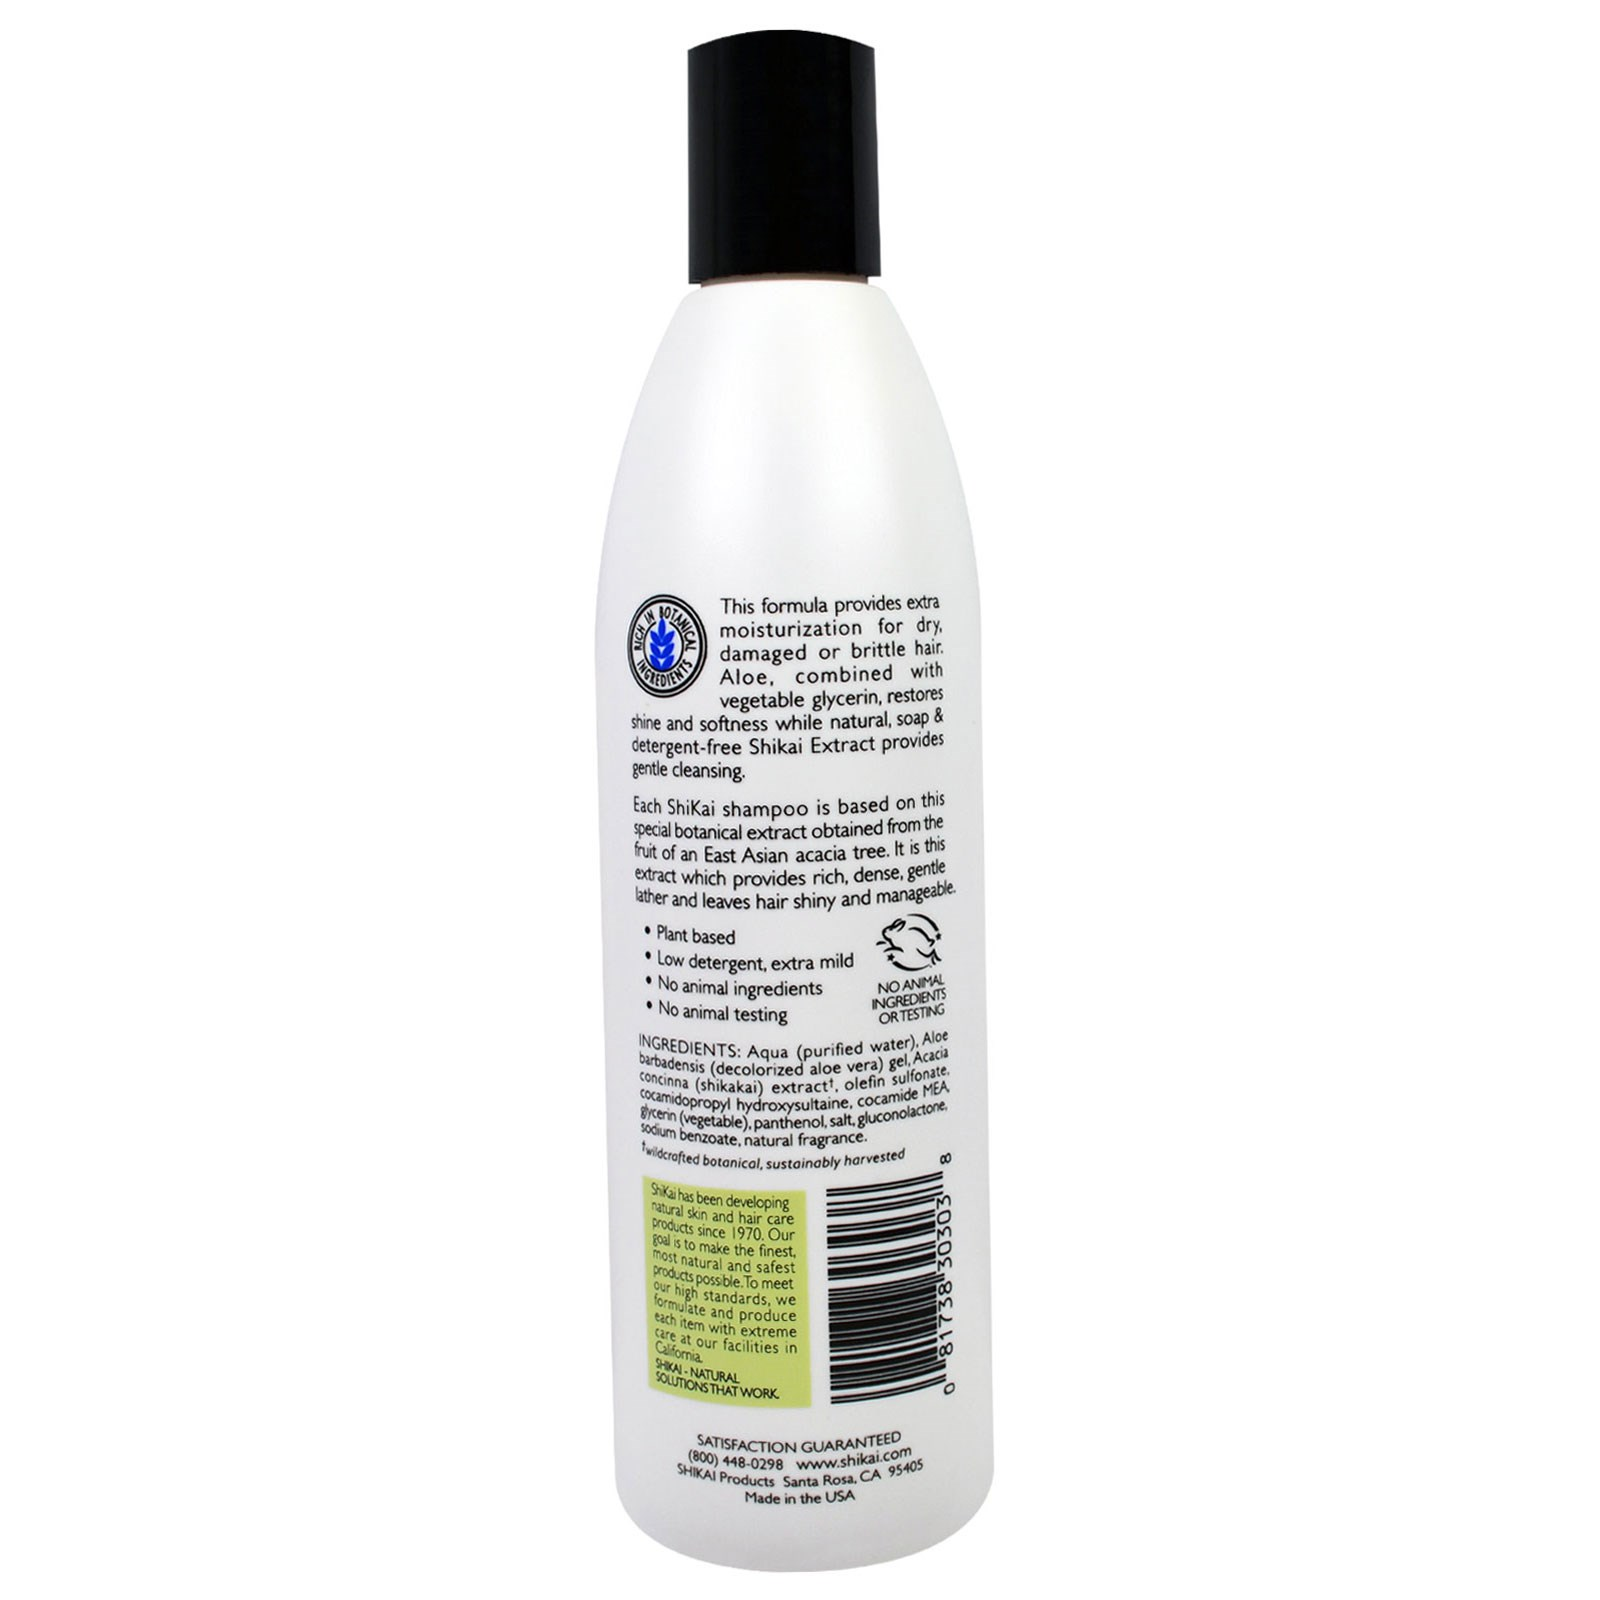 Non-Detergen Natural Everyday Cleansing Shampoo Plant-Based Non-Soap Shikai